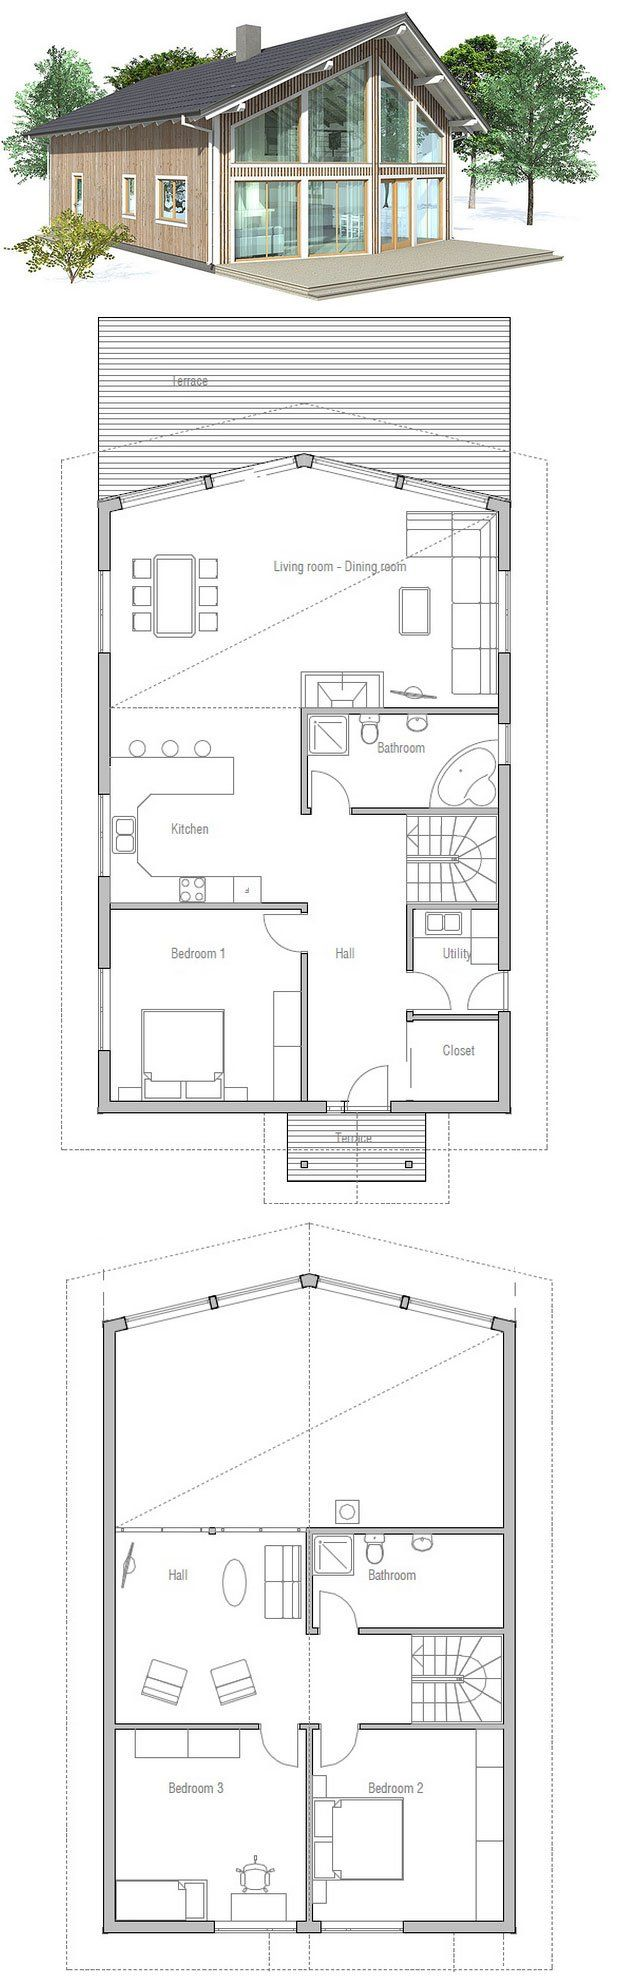 Small House Plans With Loft Bedroom 17 Best Ideas About Loft Floor Plans On Pinterest Small Home